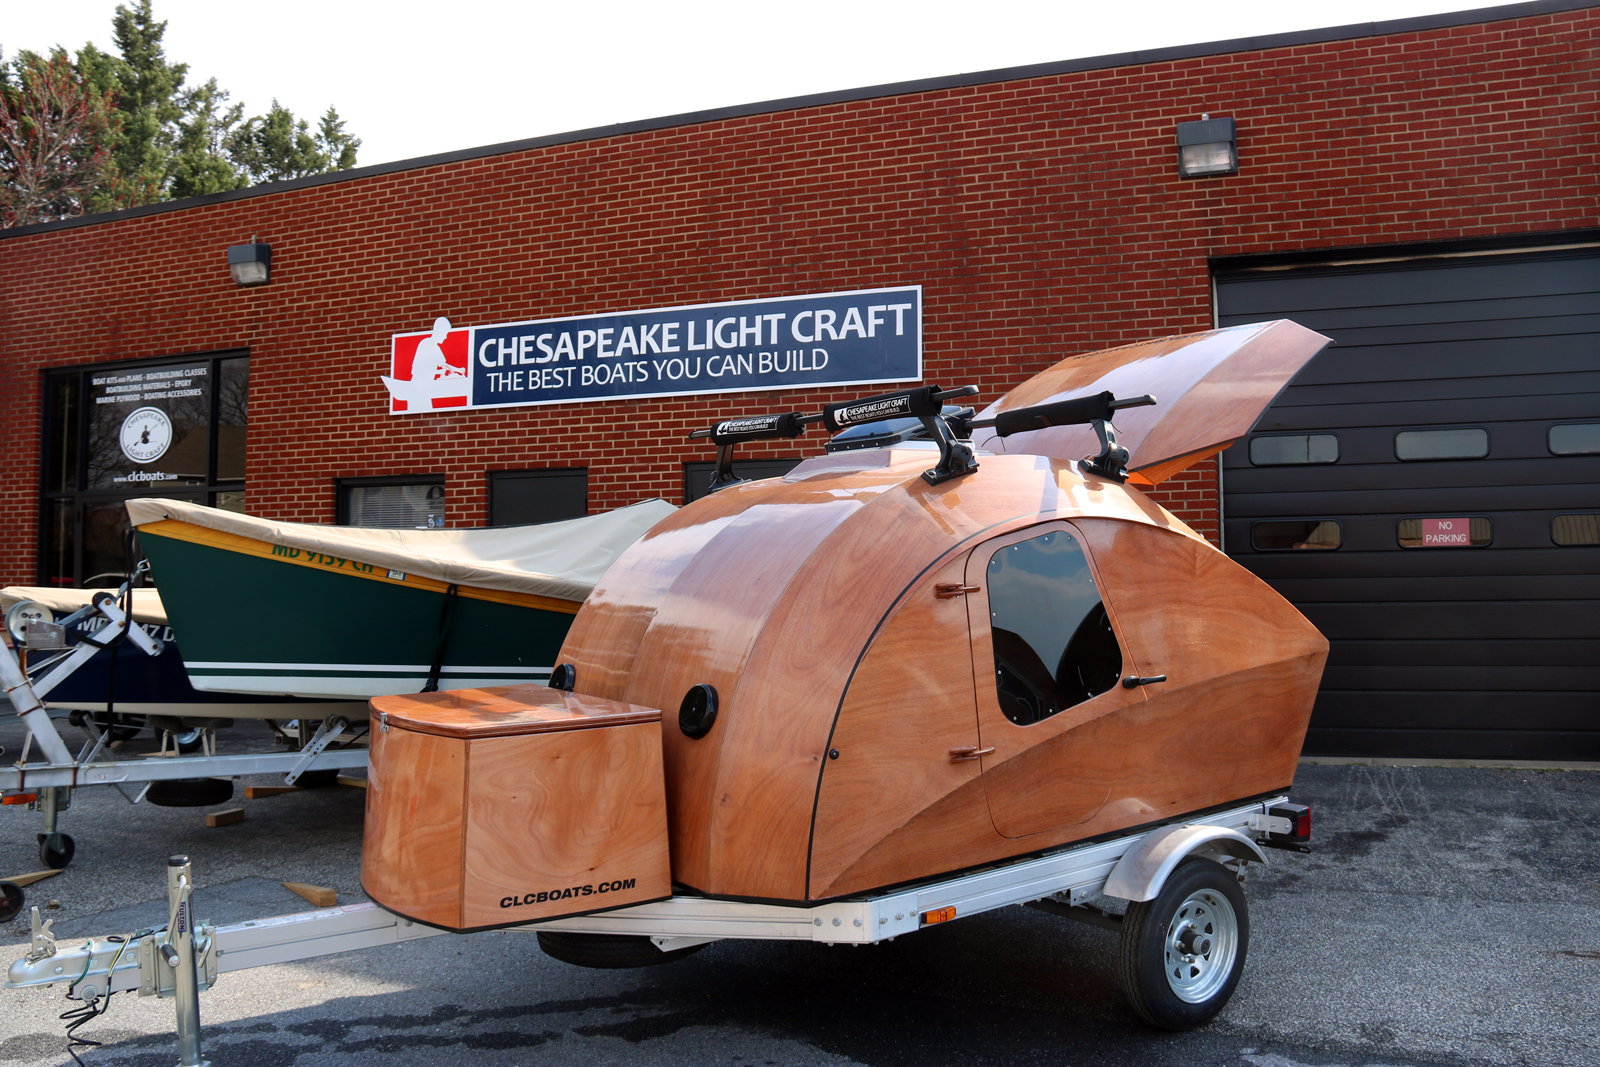 Teardrop Camper by Chesapeake Light Craft